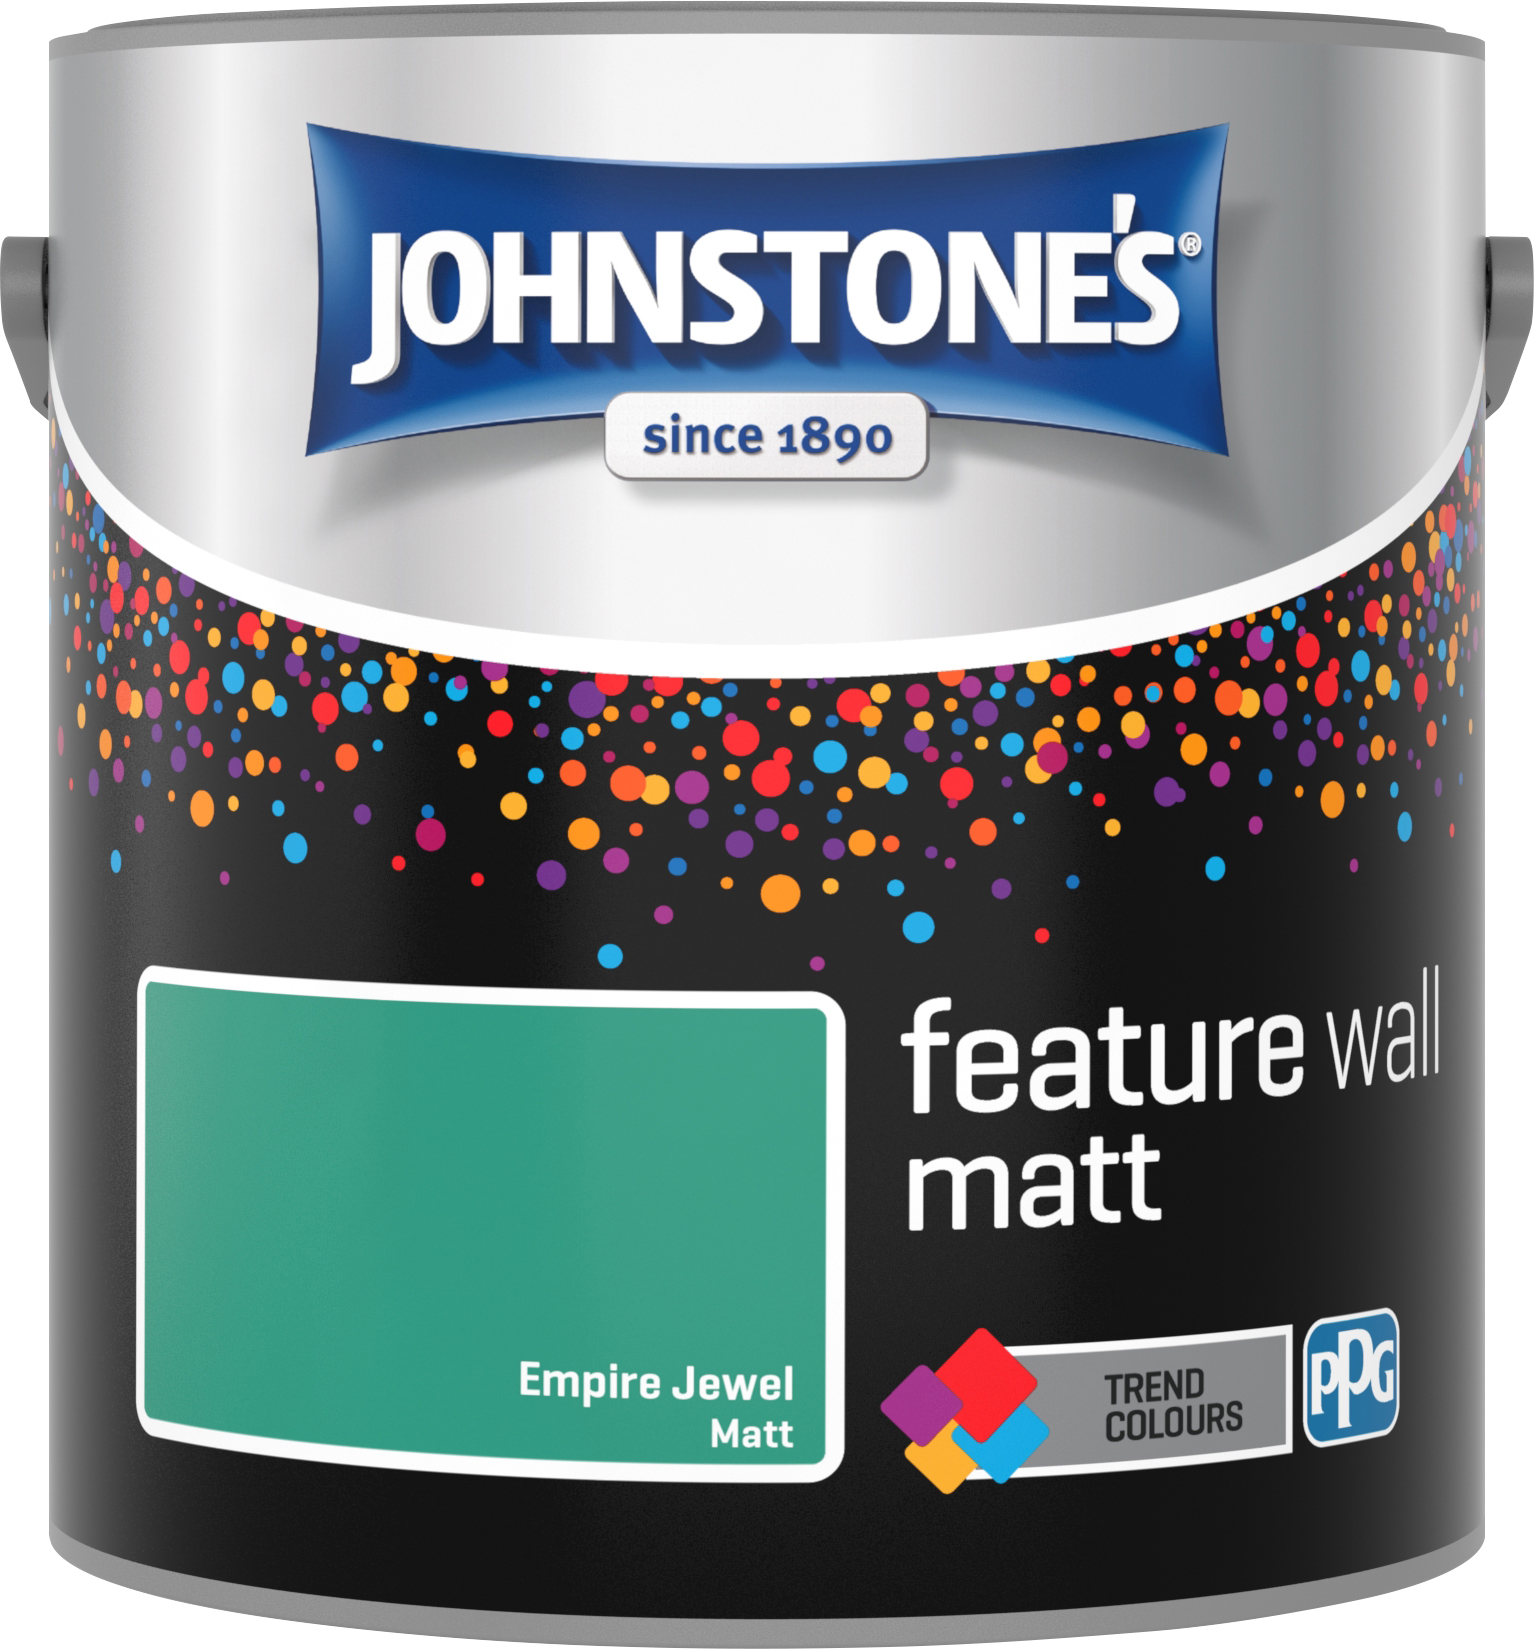 Johnstone's 2.5 Litre Feature Wall Matt Emulsion Paint - Empire Jewel